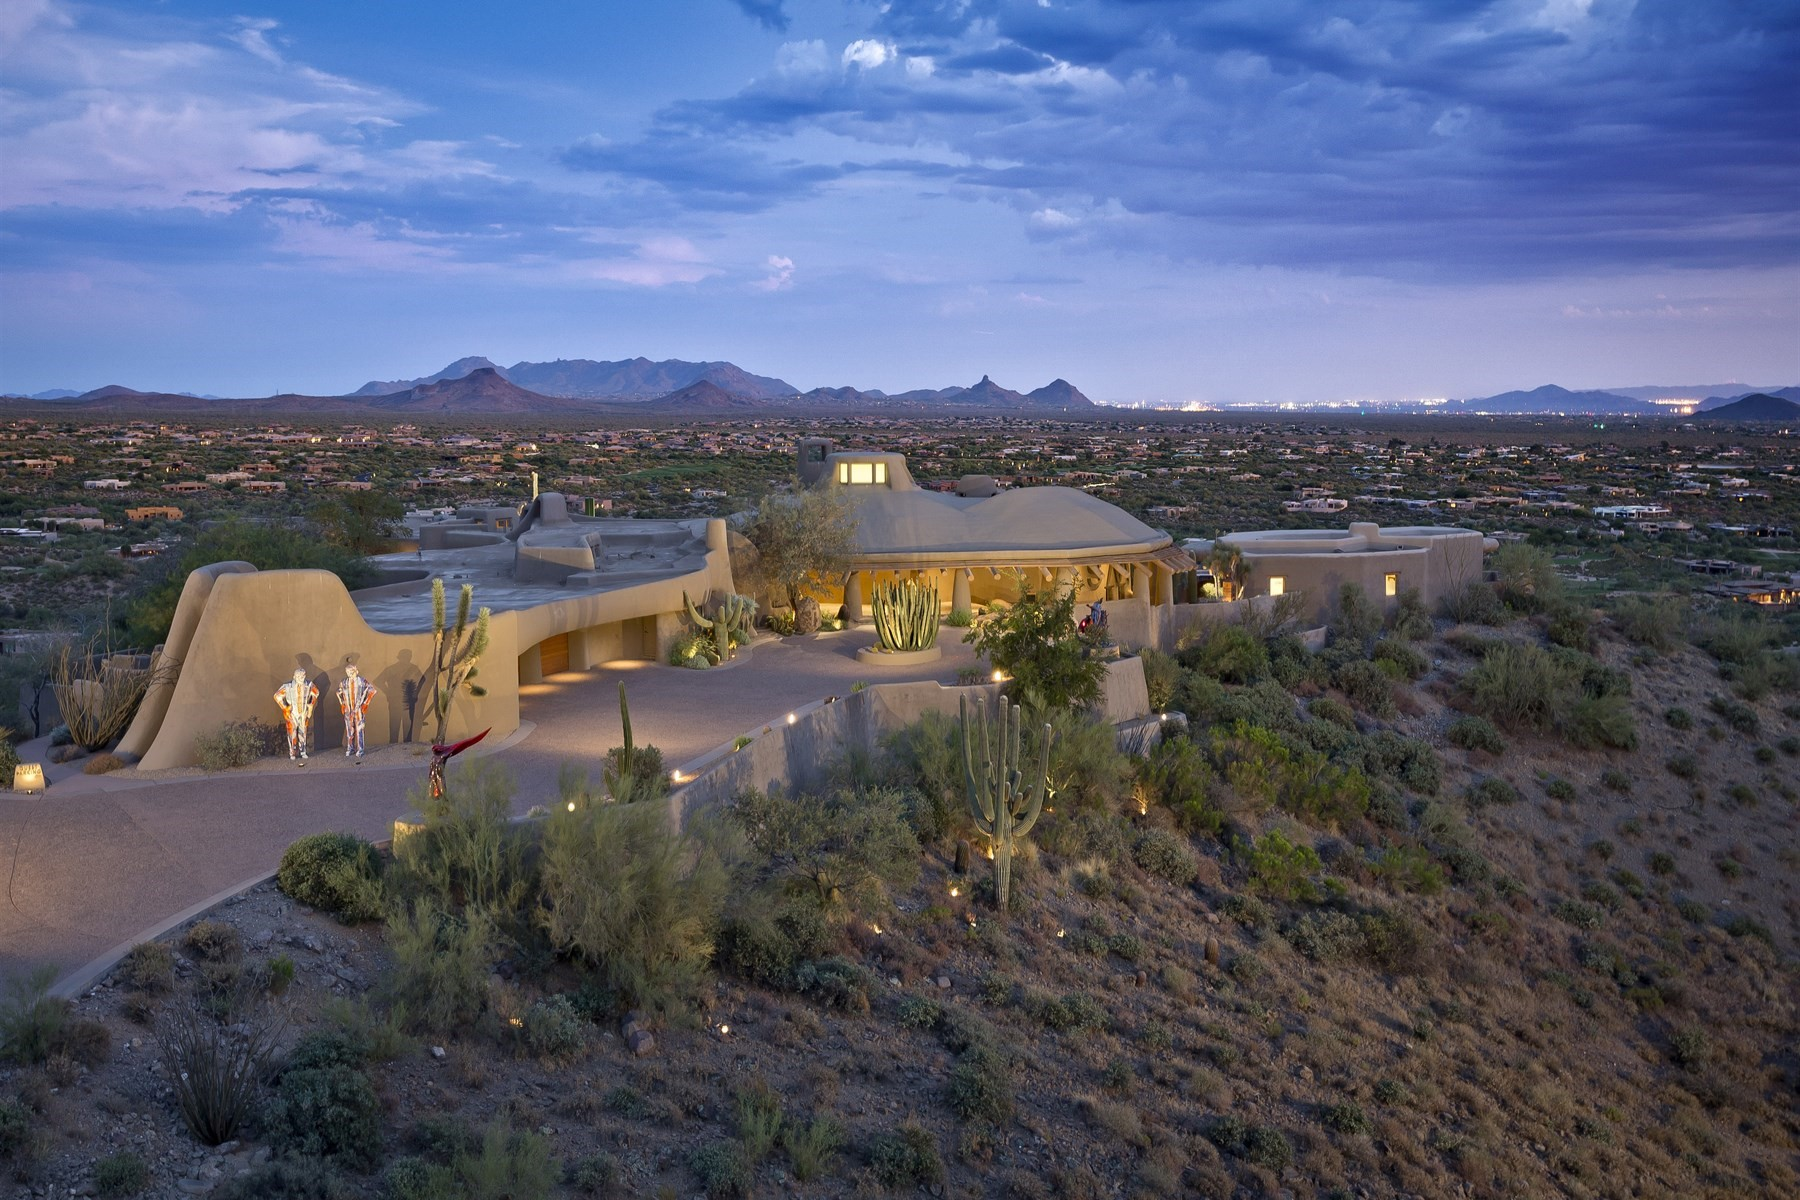 Single Family Home for Sale at One-of-a-kind 15-acre estate that towers over the valley 39029 N Alister McKenzie Dr, Scottsdale, Arizona, 85262 United States